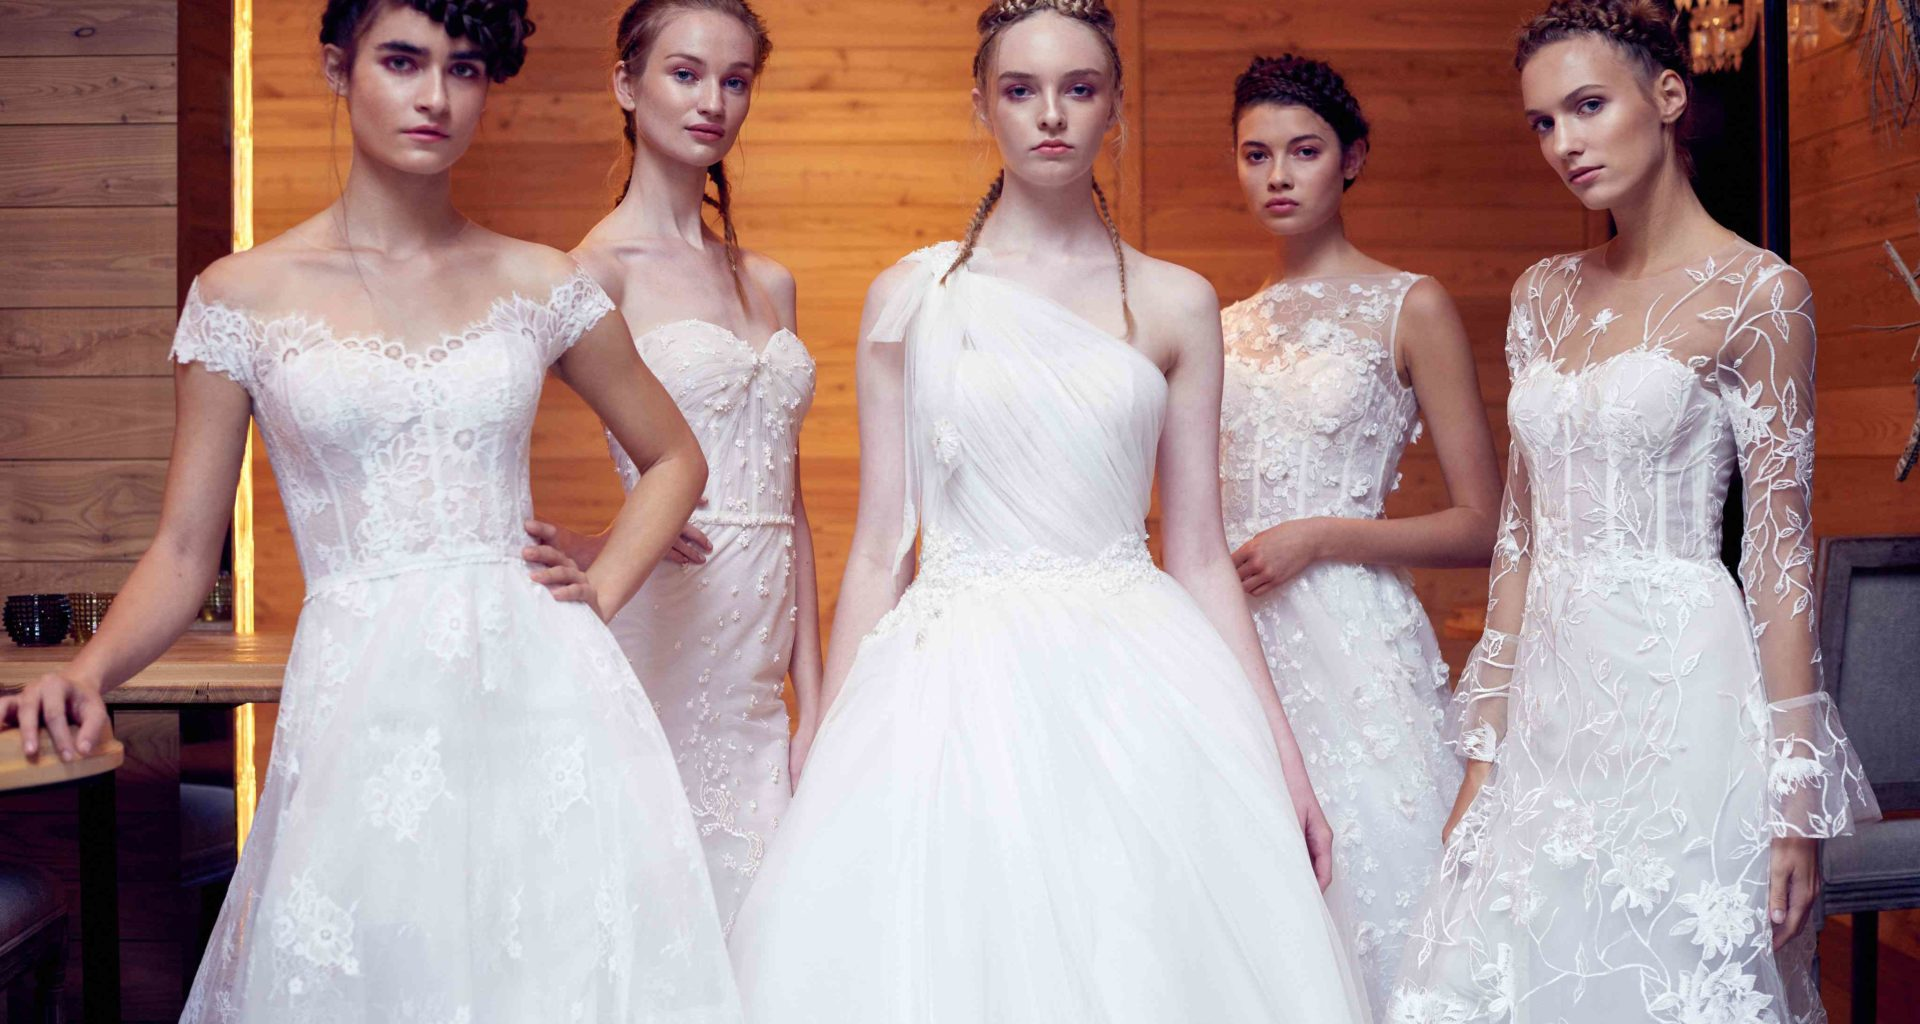 Dresses Which are Good Choice for Weddings